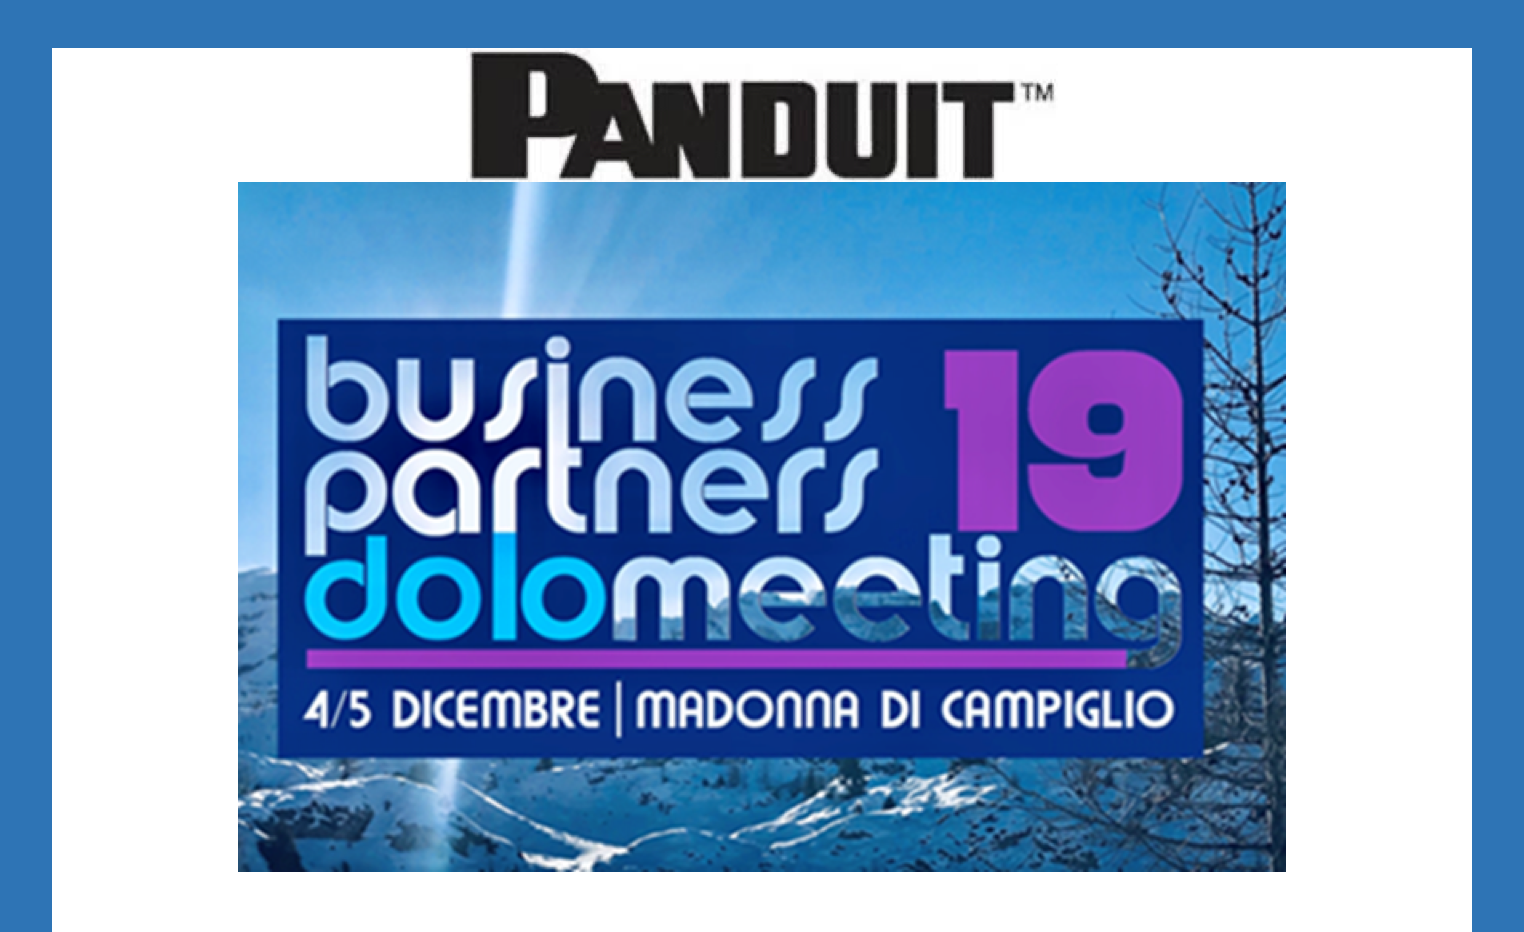 panduit business partners dolomeeting 2019